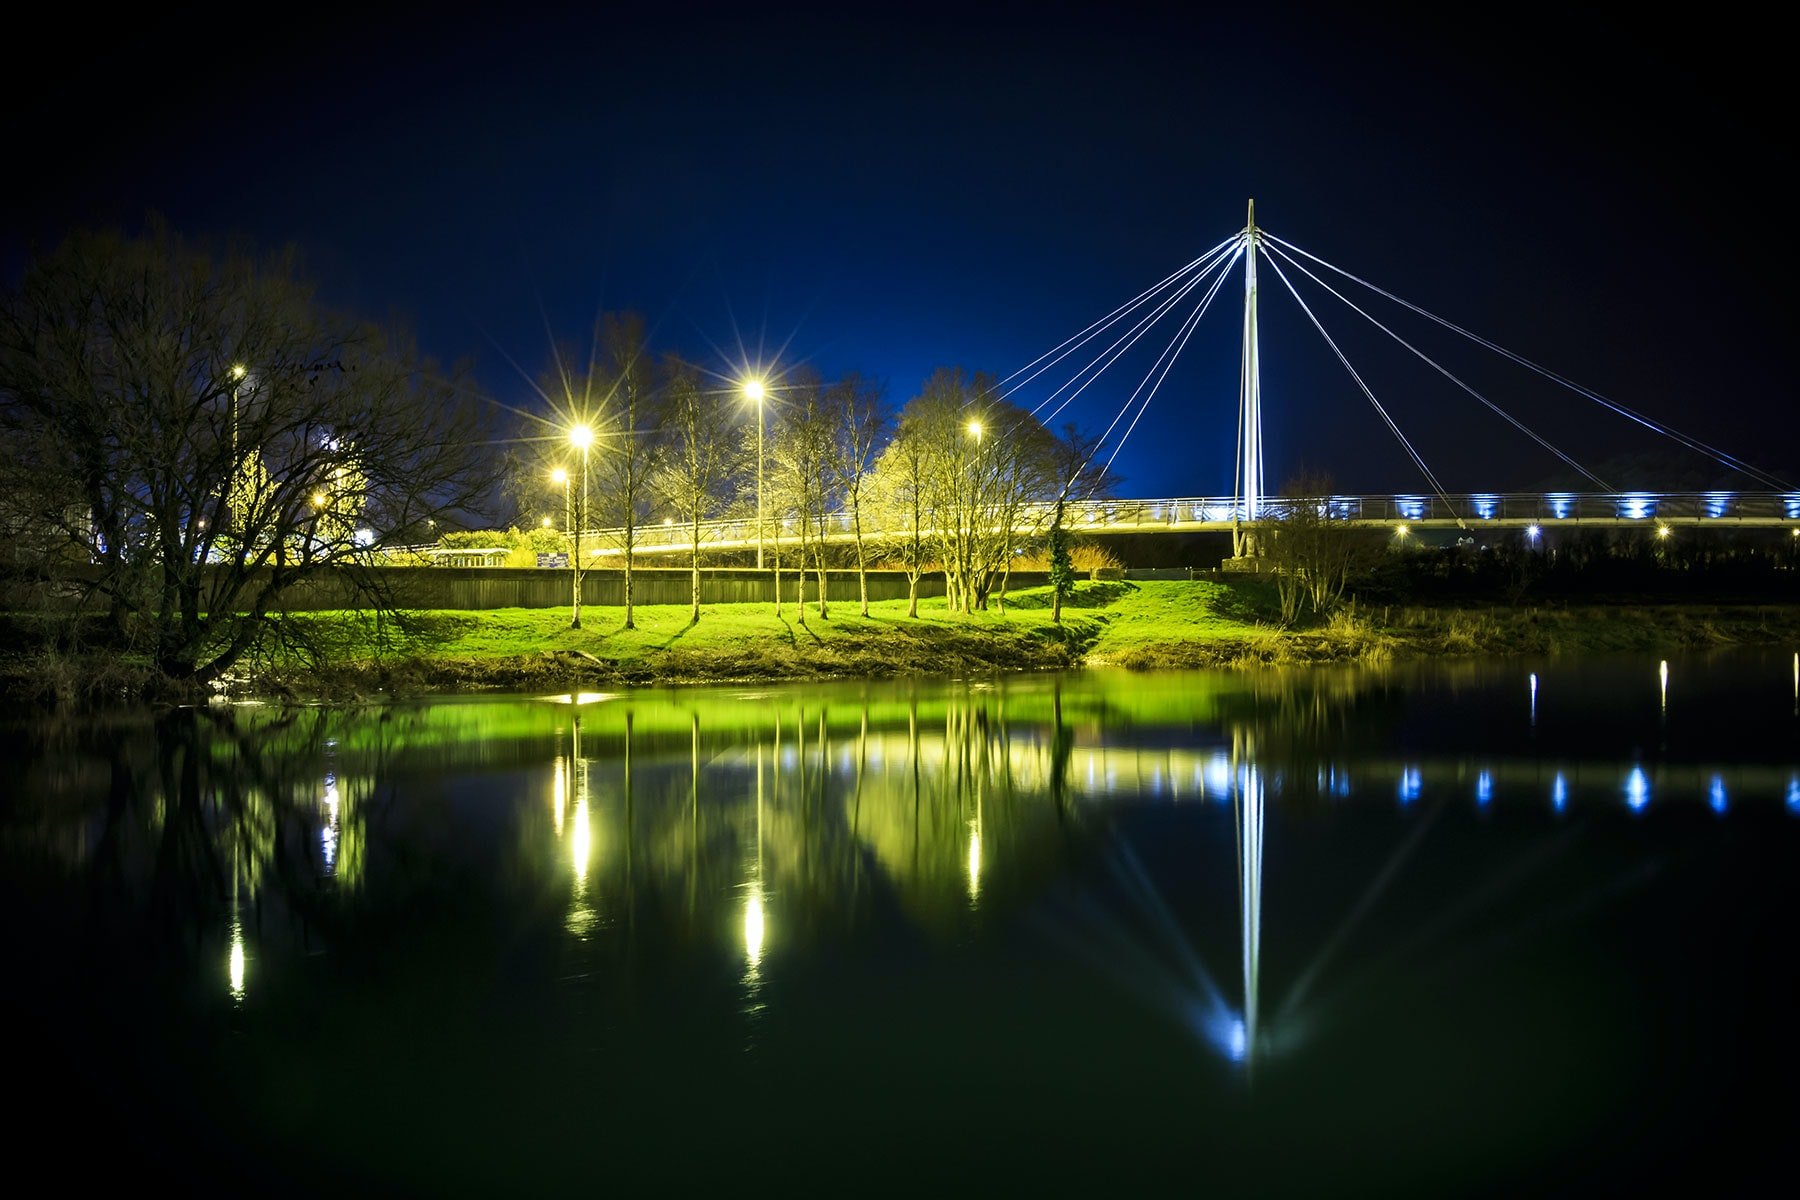 Street lights and a suspension bridge reflect into a lake at night